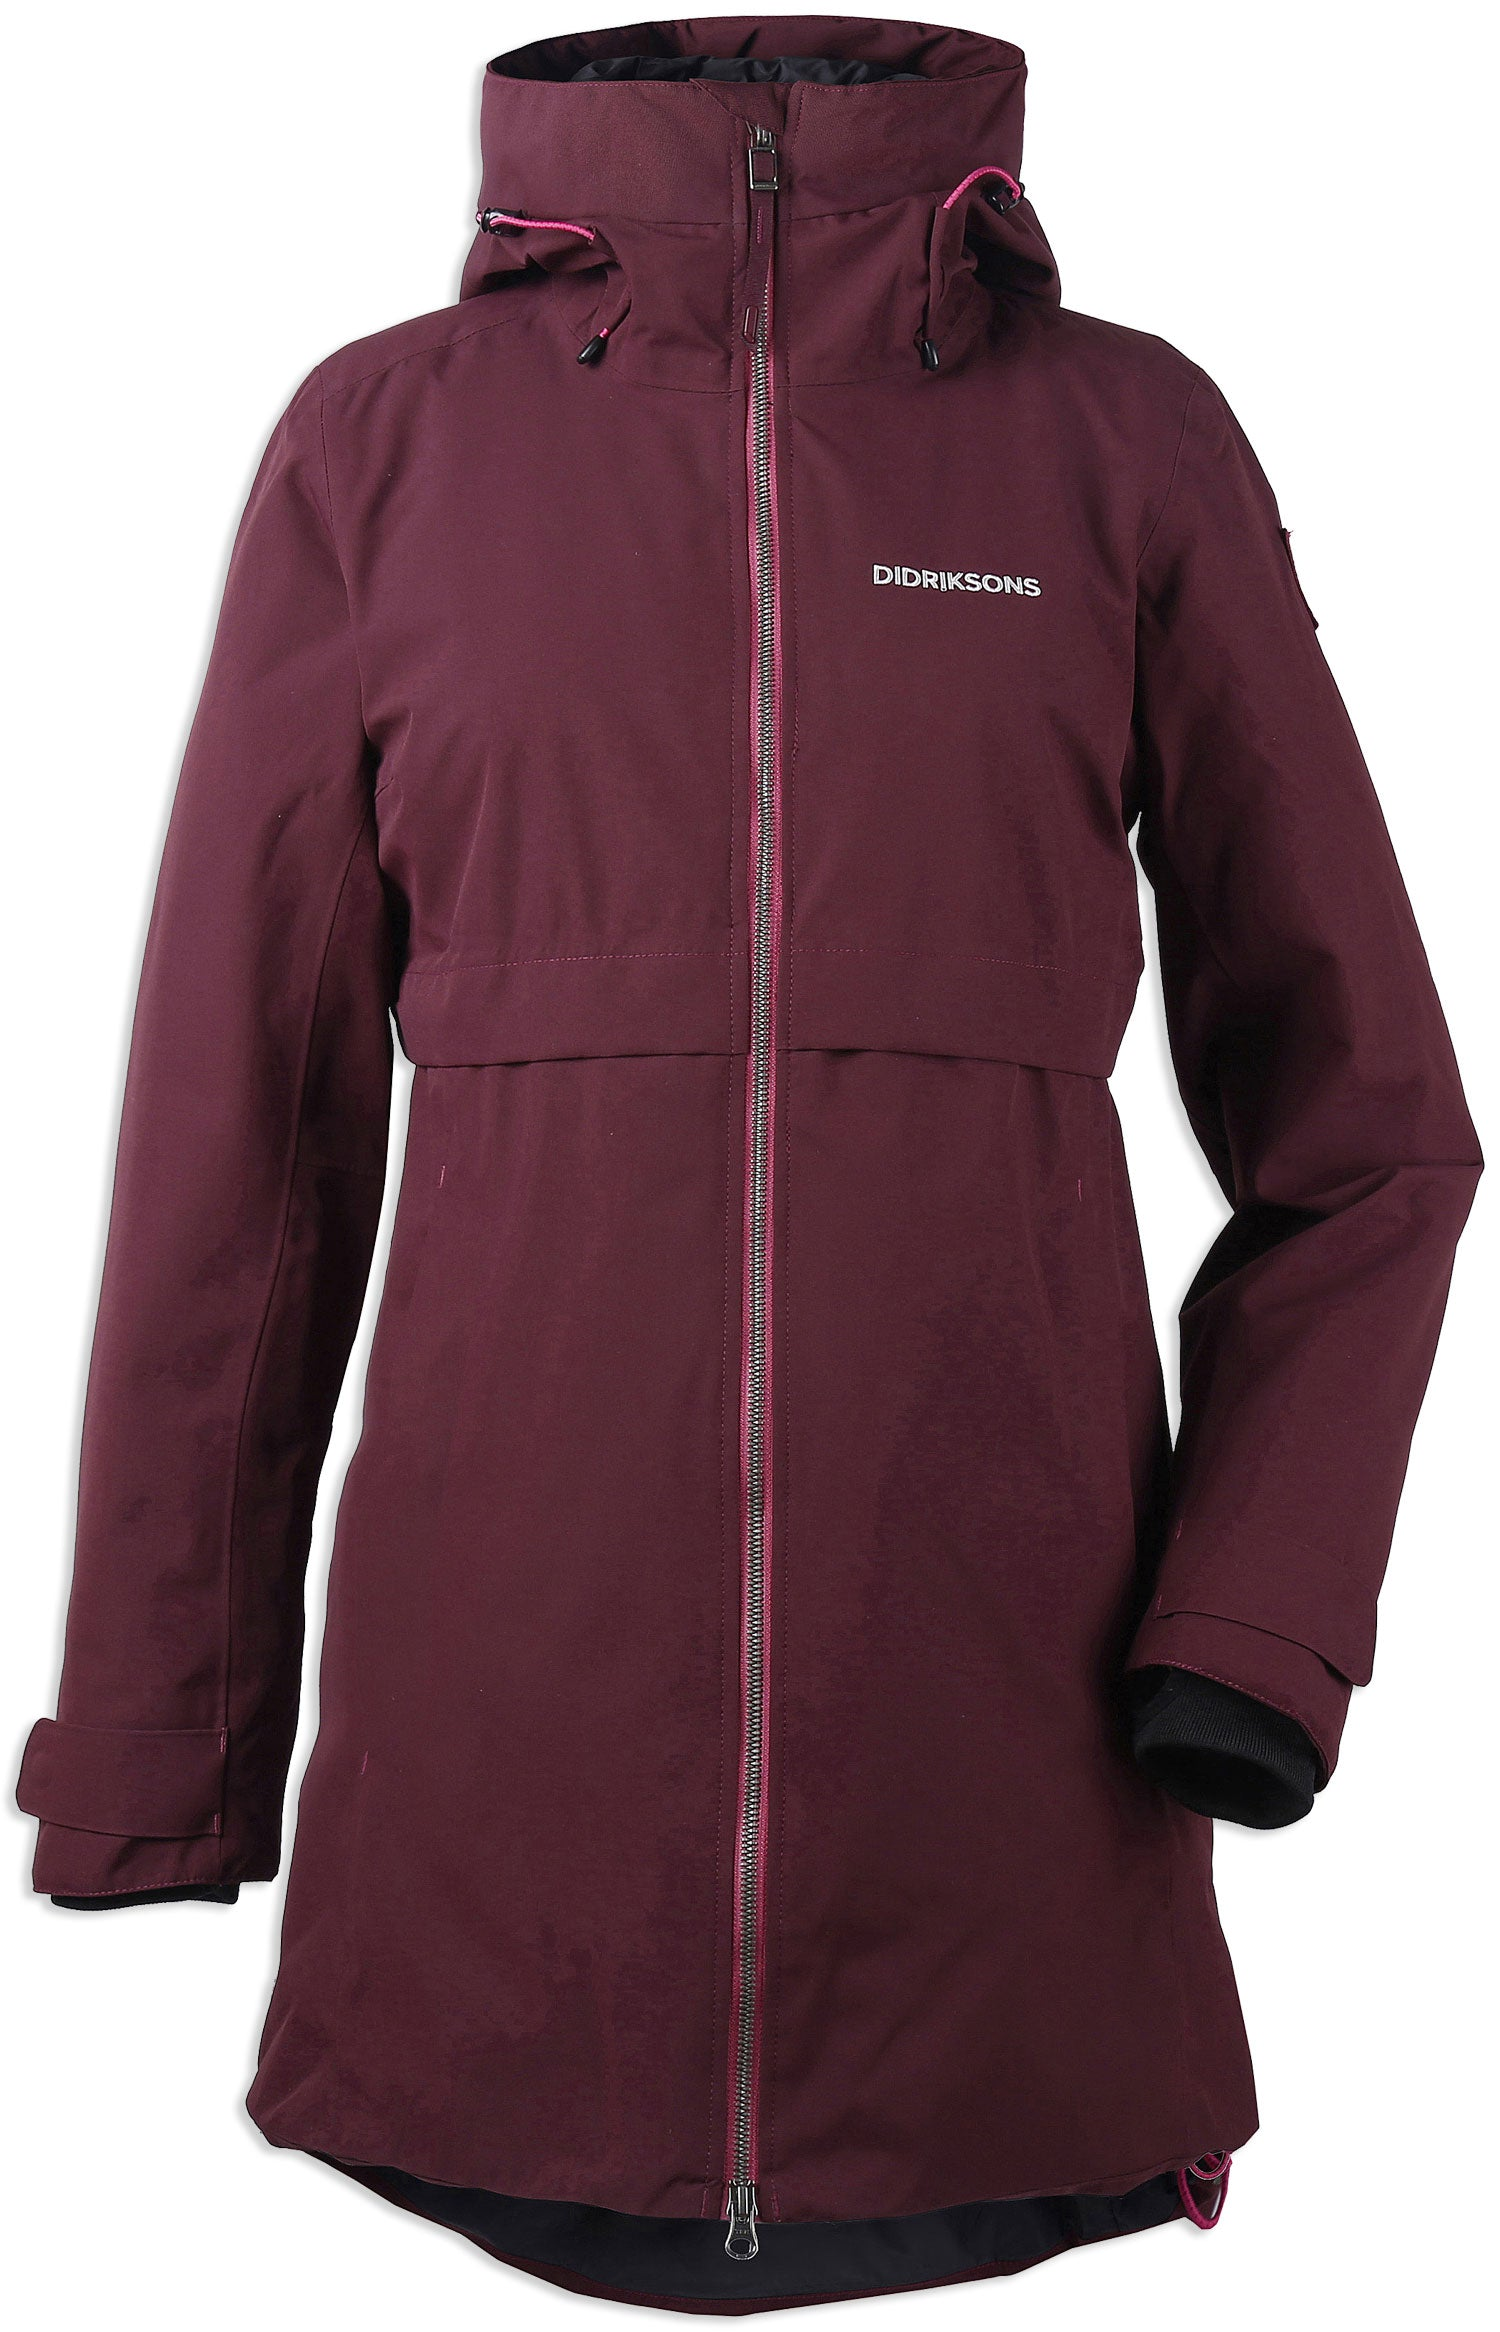 front view wine red women's waterproof Parka by Didriksons - Scandinavia's leading outdoor clothing specialists is a stylish 3/4 length